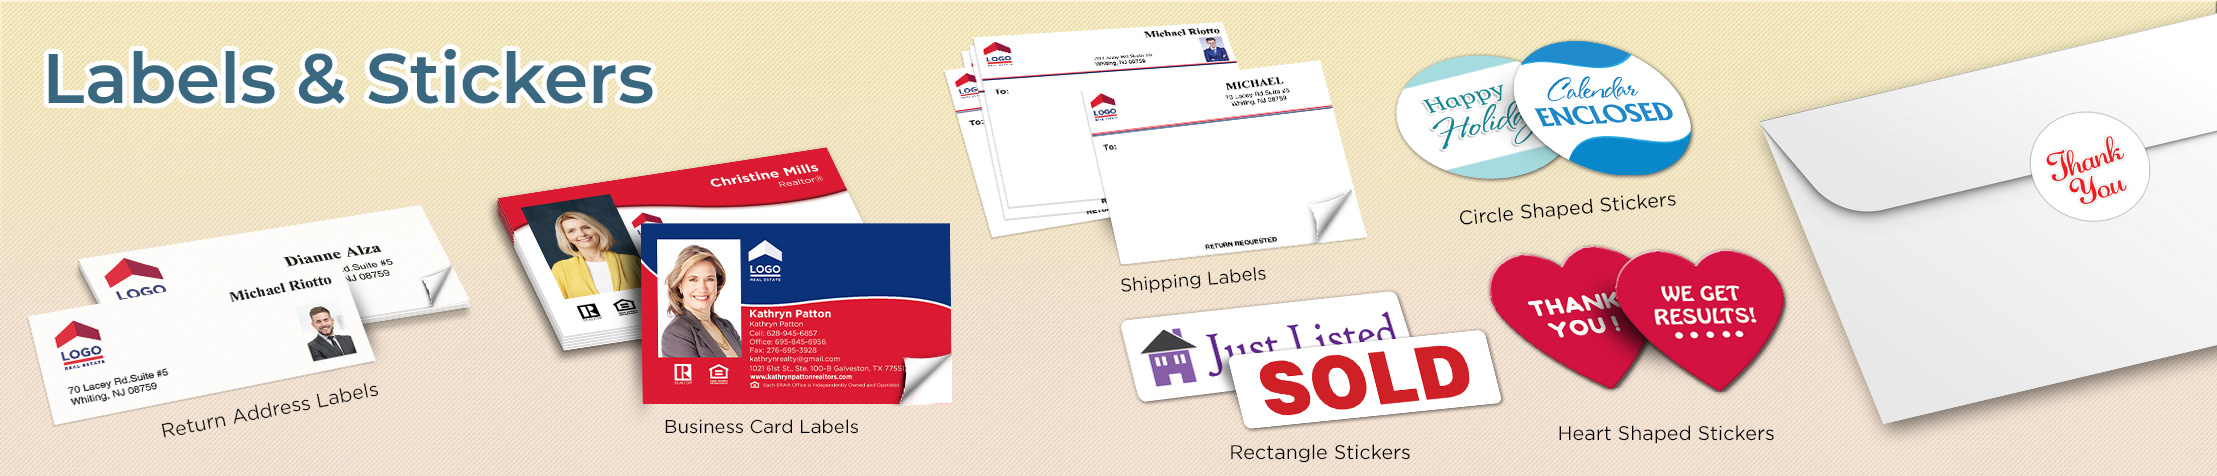 ERA Real Estate Labels and Stickers - ERA Real Estate business card labels, return address labels, shipping labels, and assorted stickers | BestPrintBuy.com